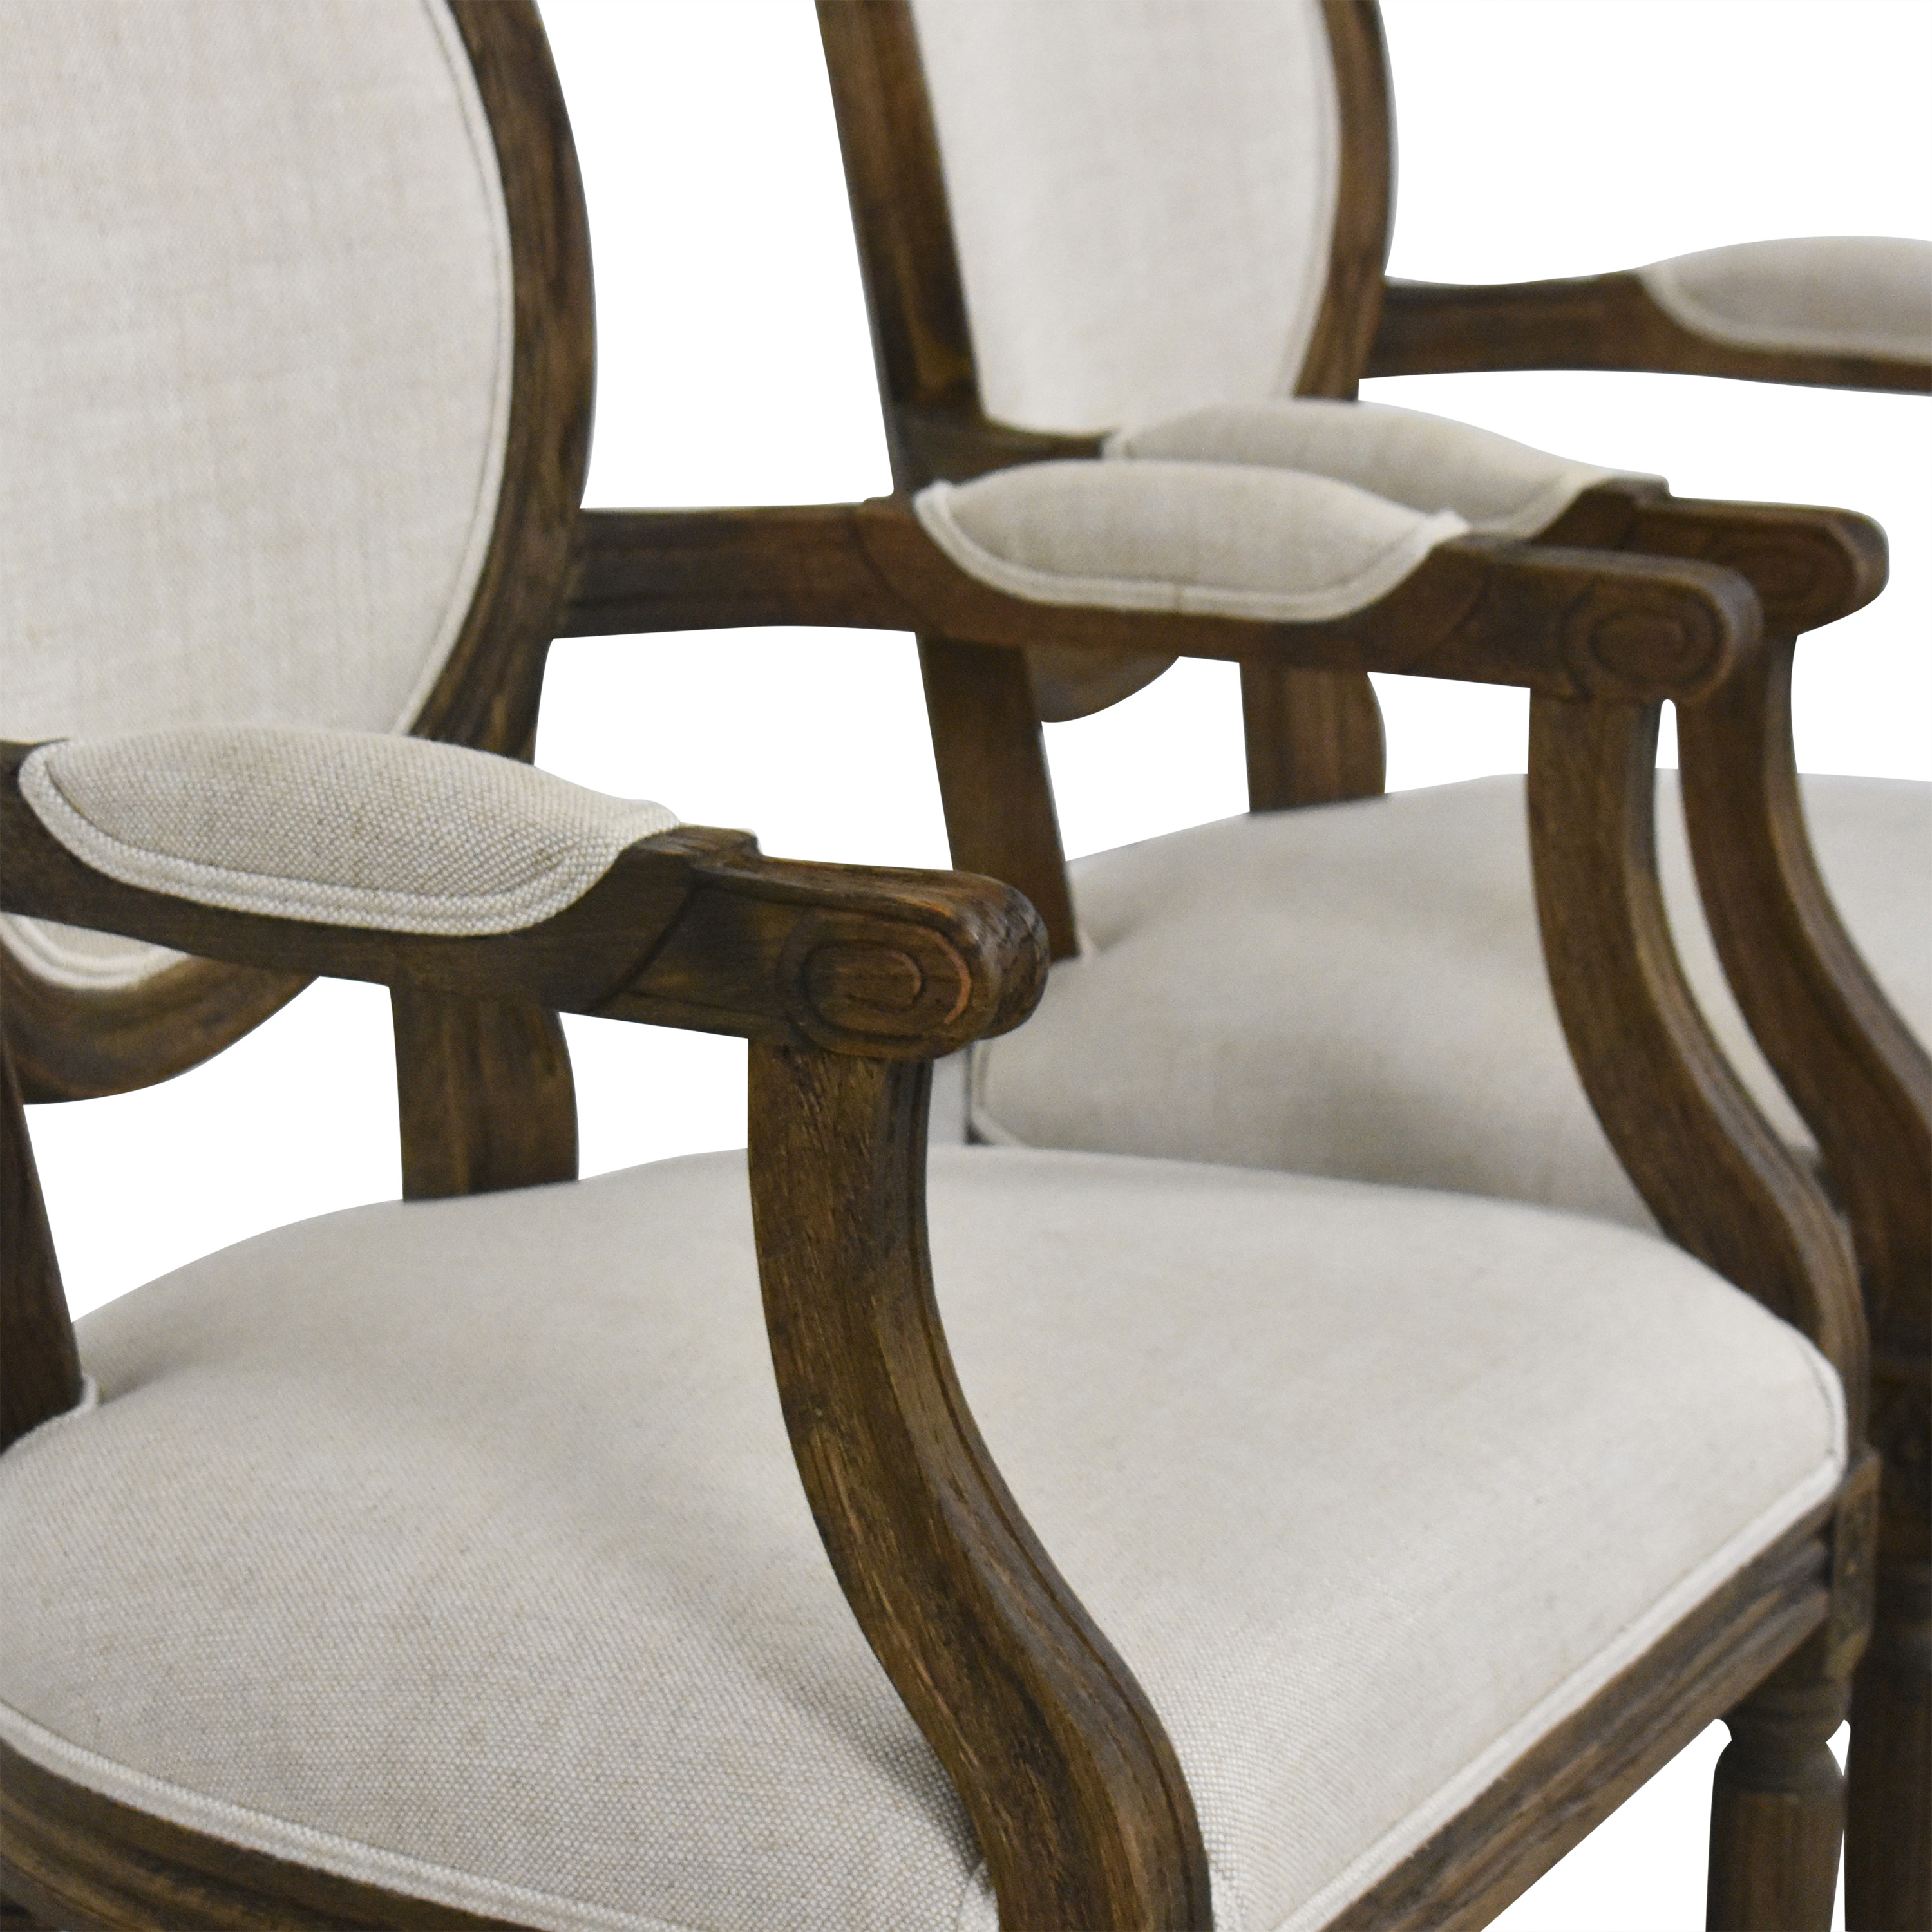 Restoration Hardware Vintage French Round Dining Arm Chairs / Dining Chairs